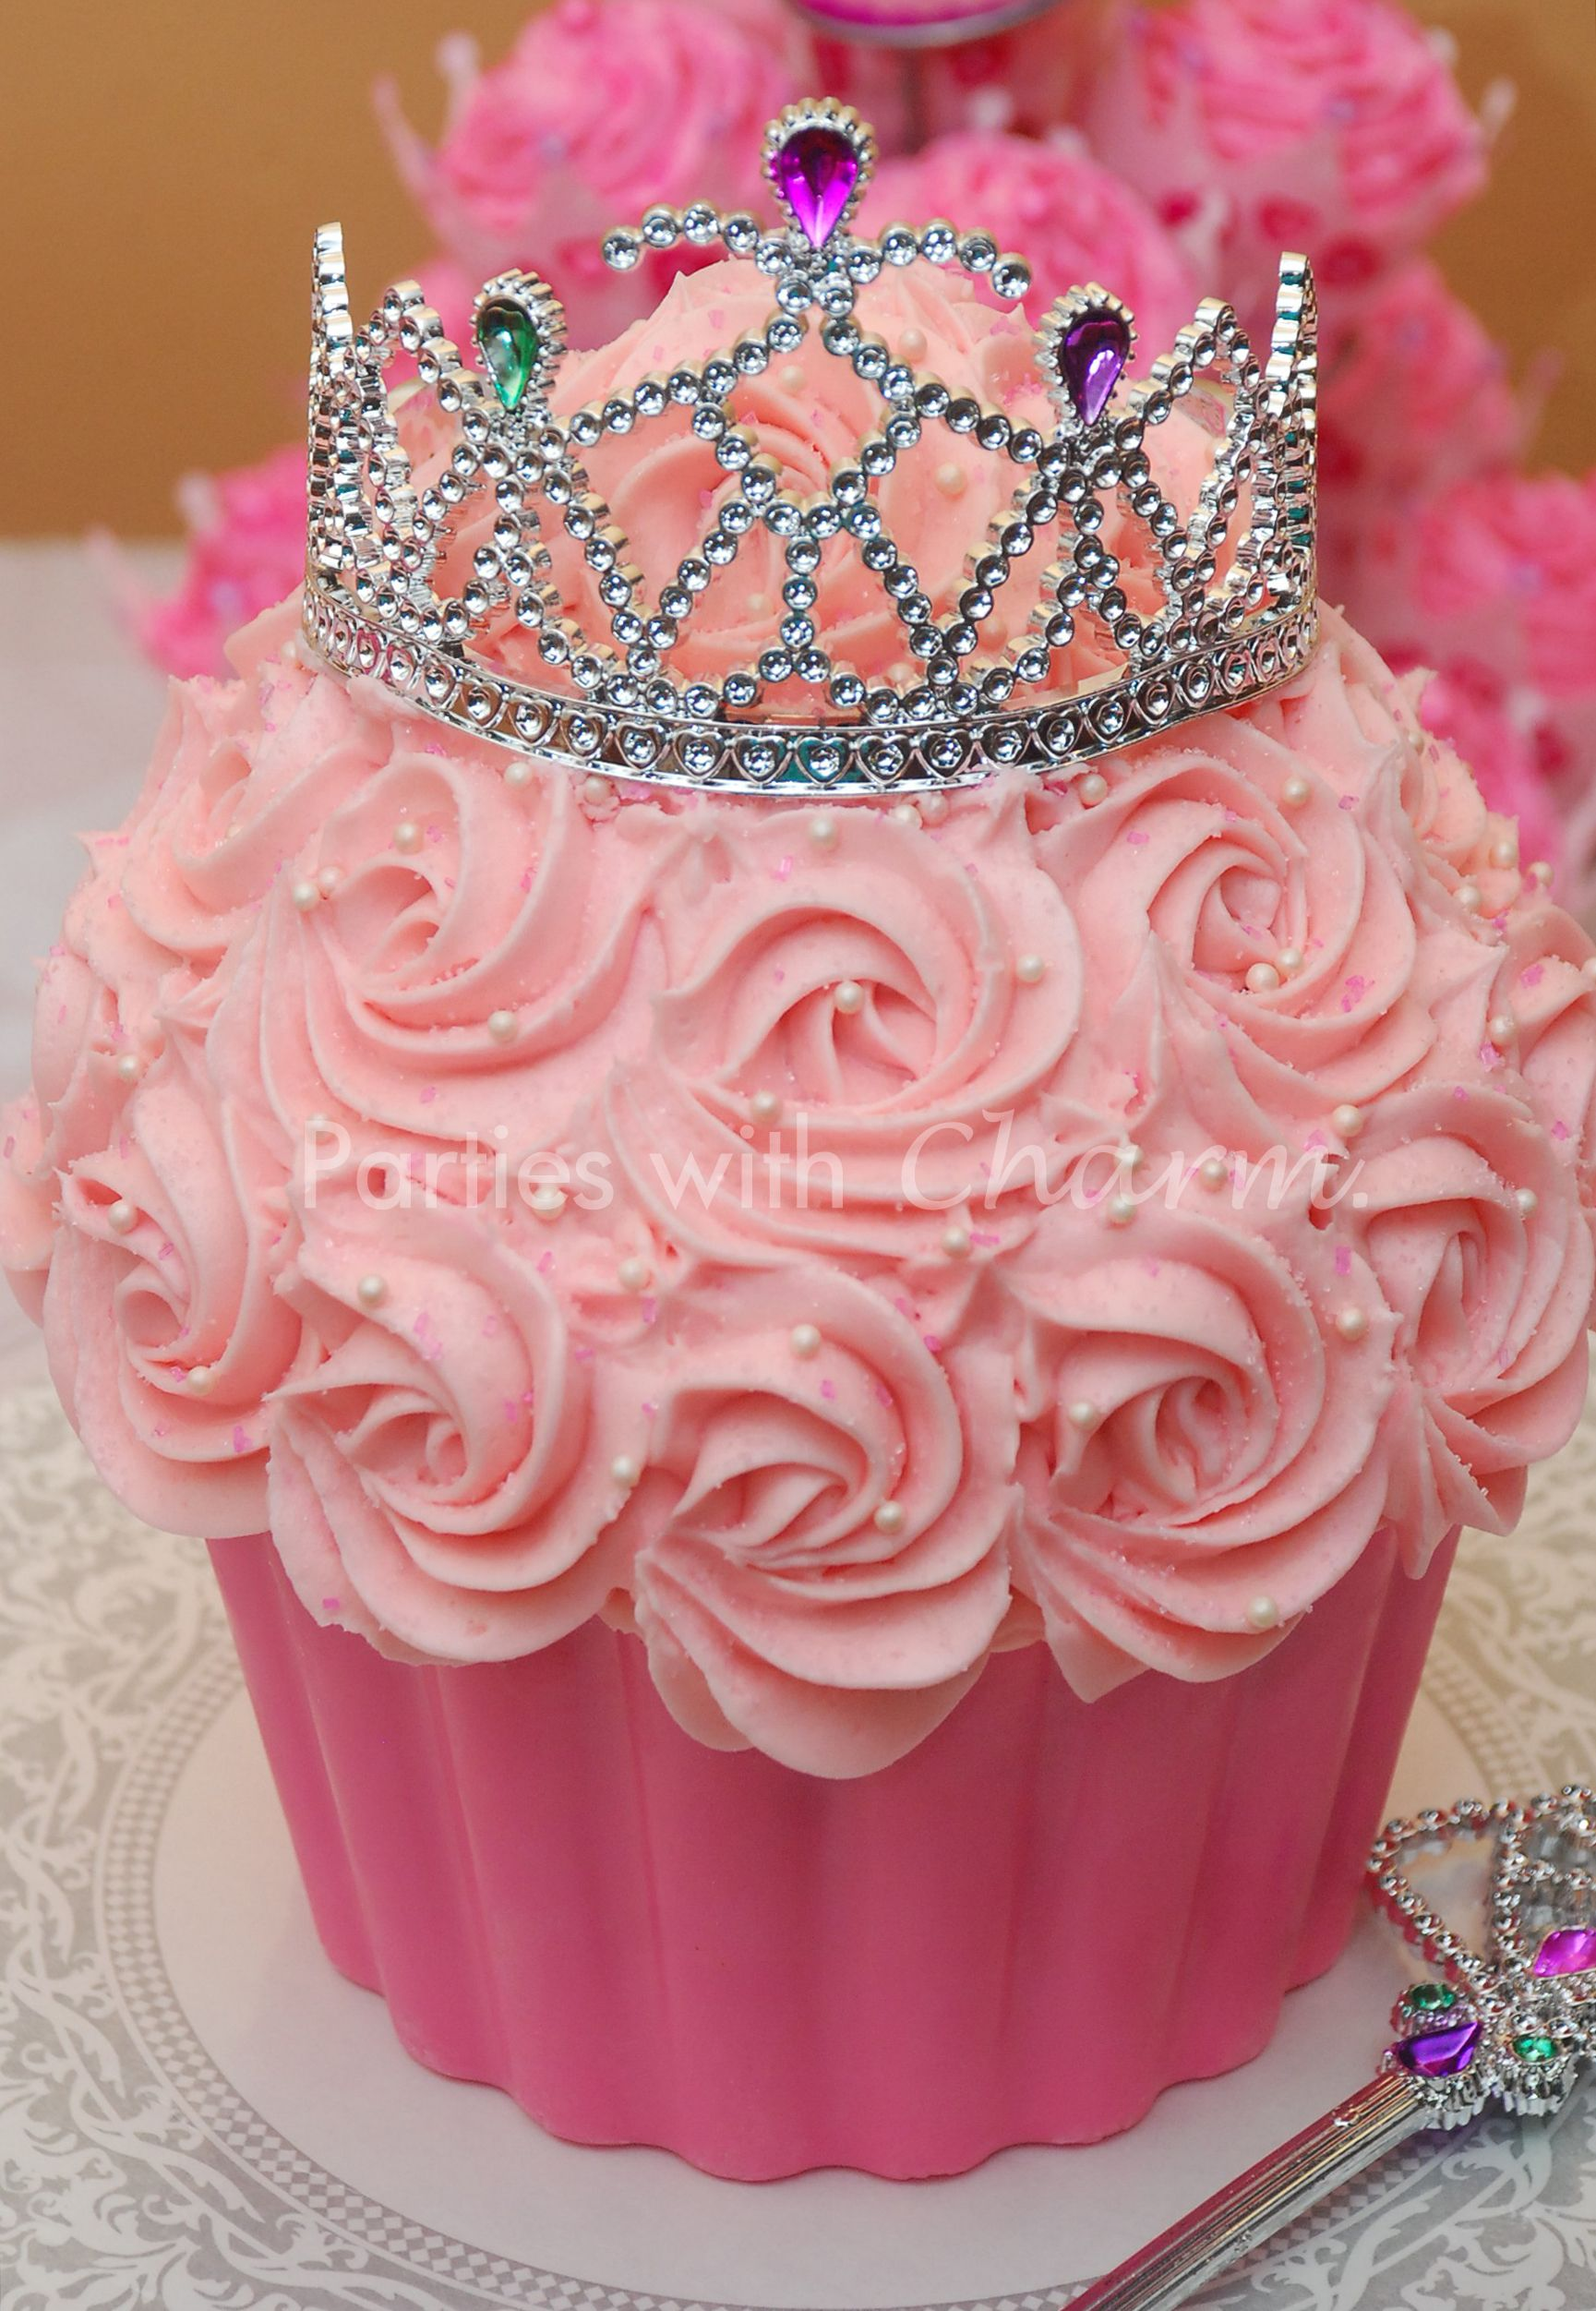 Princess Cupcake Cake With Tiara For Baby Shower Or Birthday Party